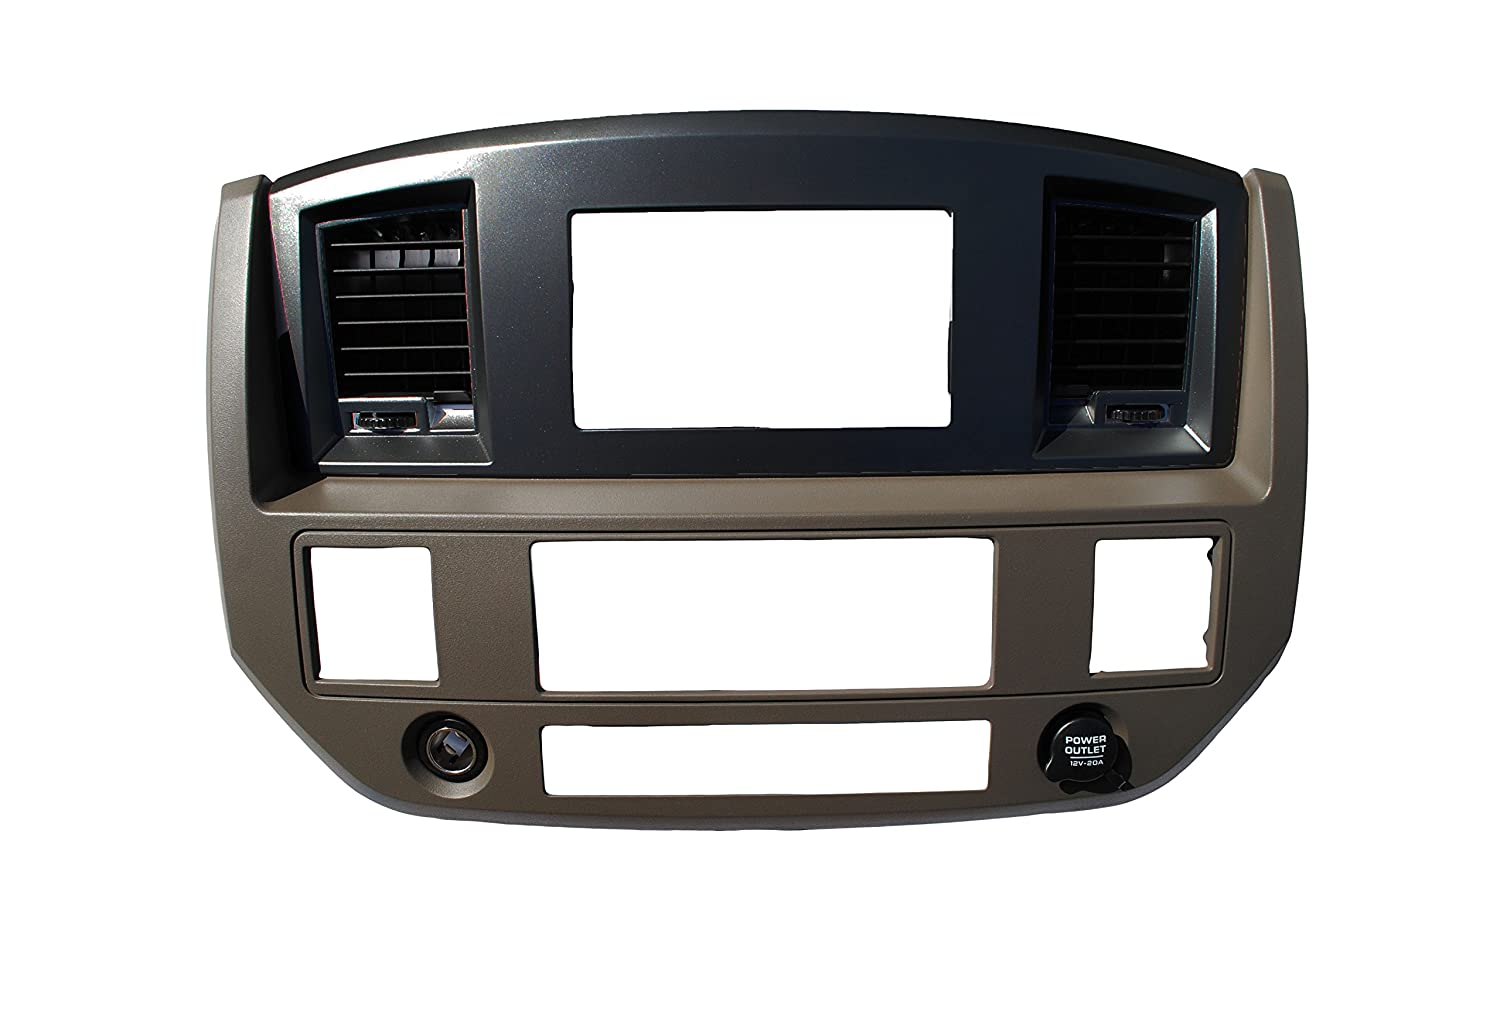 Dodge Ram 2006 2007 2008 2009 Aftermarket Double Din Stereo Radio Dash Kit Install Bezel + Wiring Harness/Antenna Adapter(Khaki/Silver Premium Can-Bus Harness w/Steering Wheel Interface) Custom Install Parts